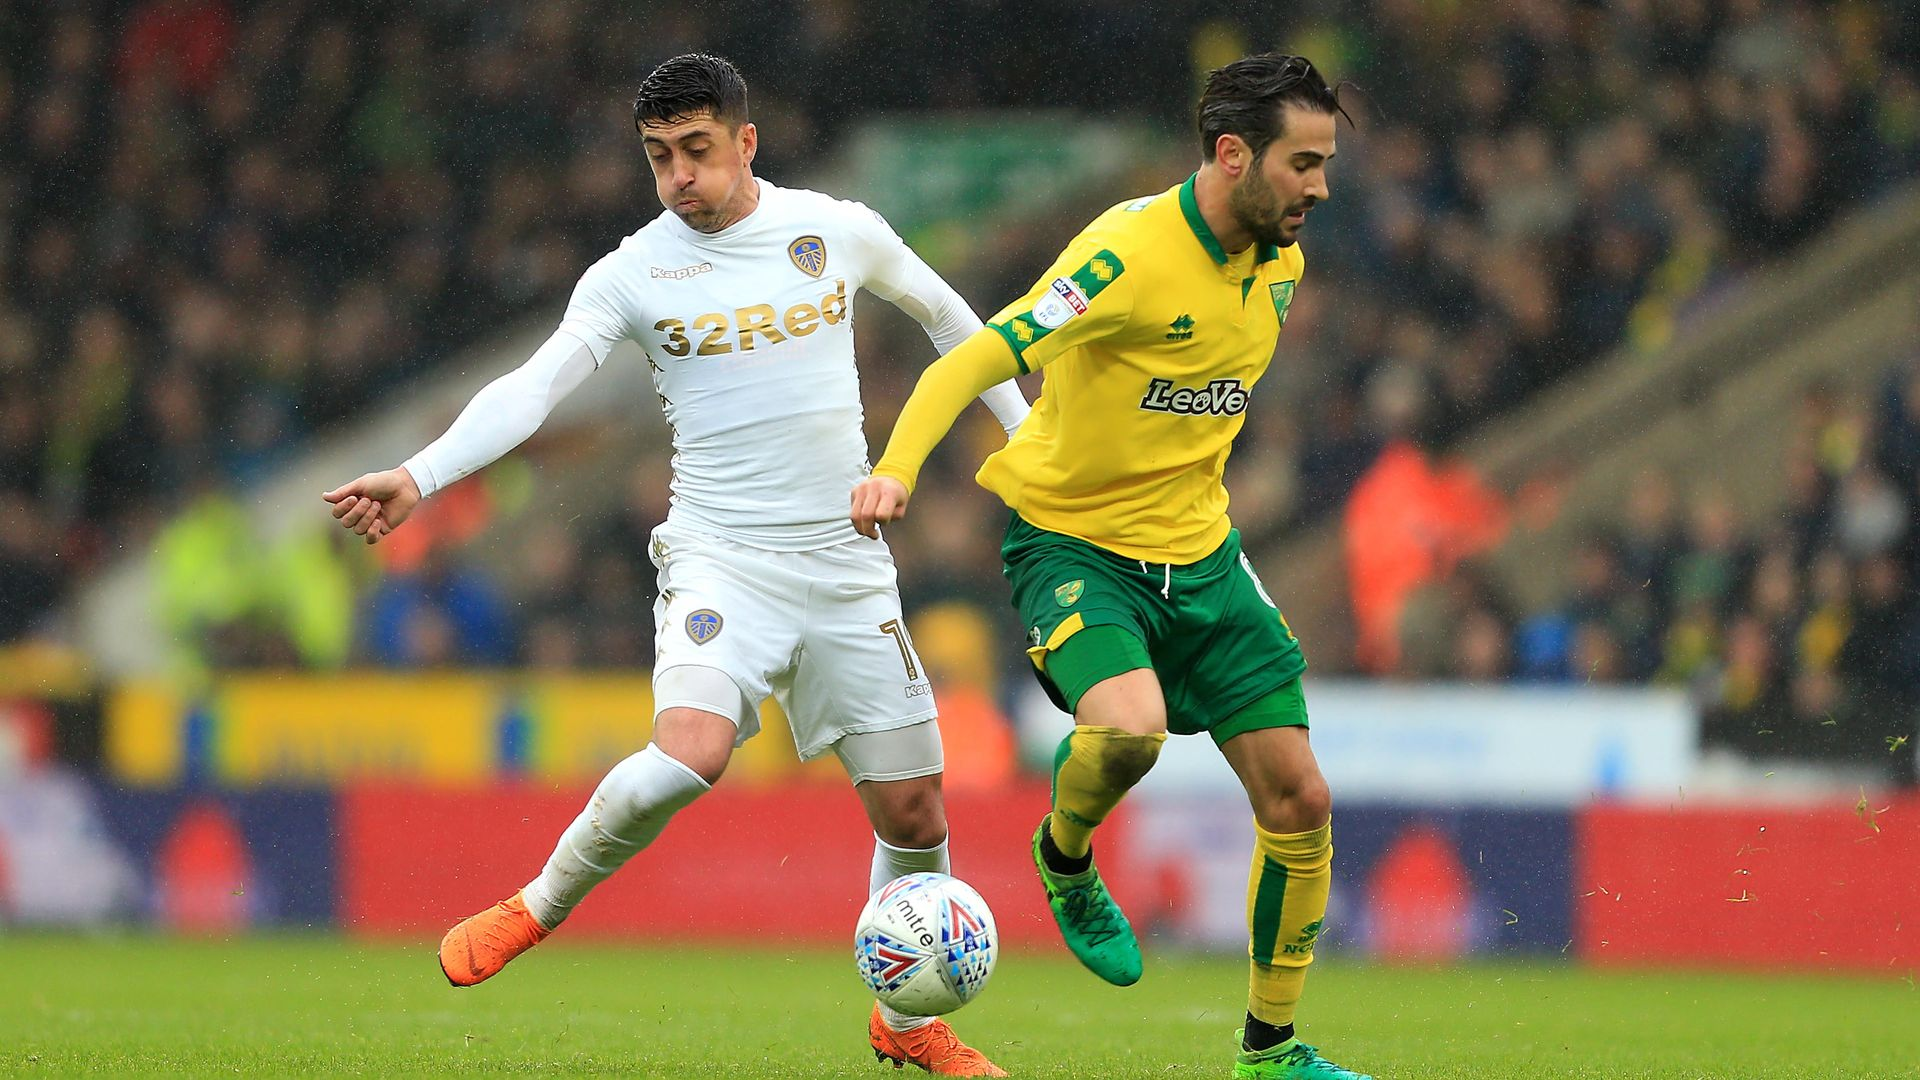 Qpr vs norwich betting tips financial spread betting training day cast